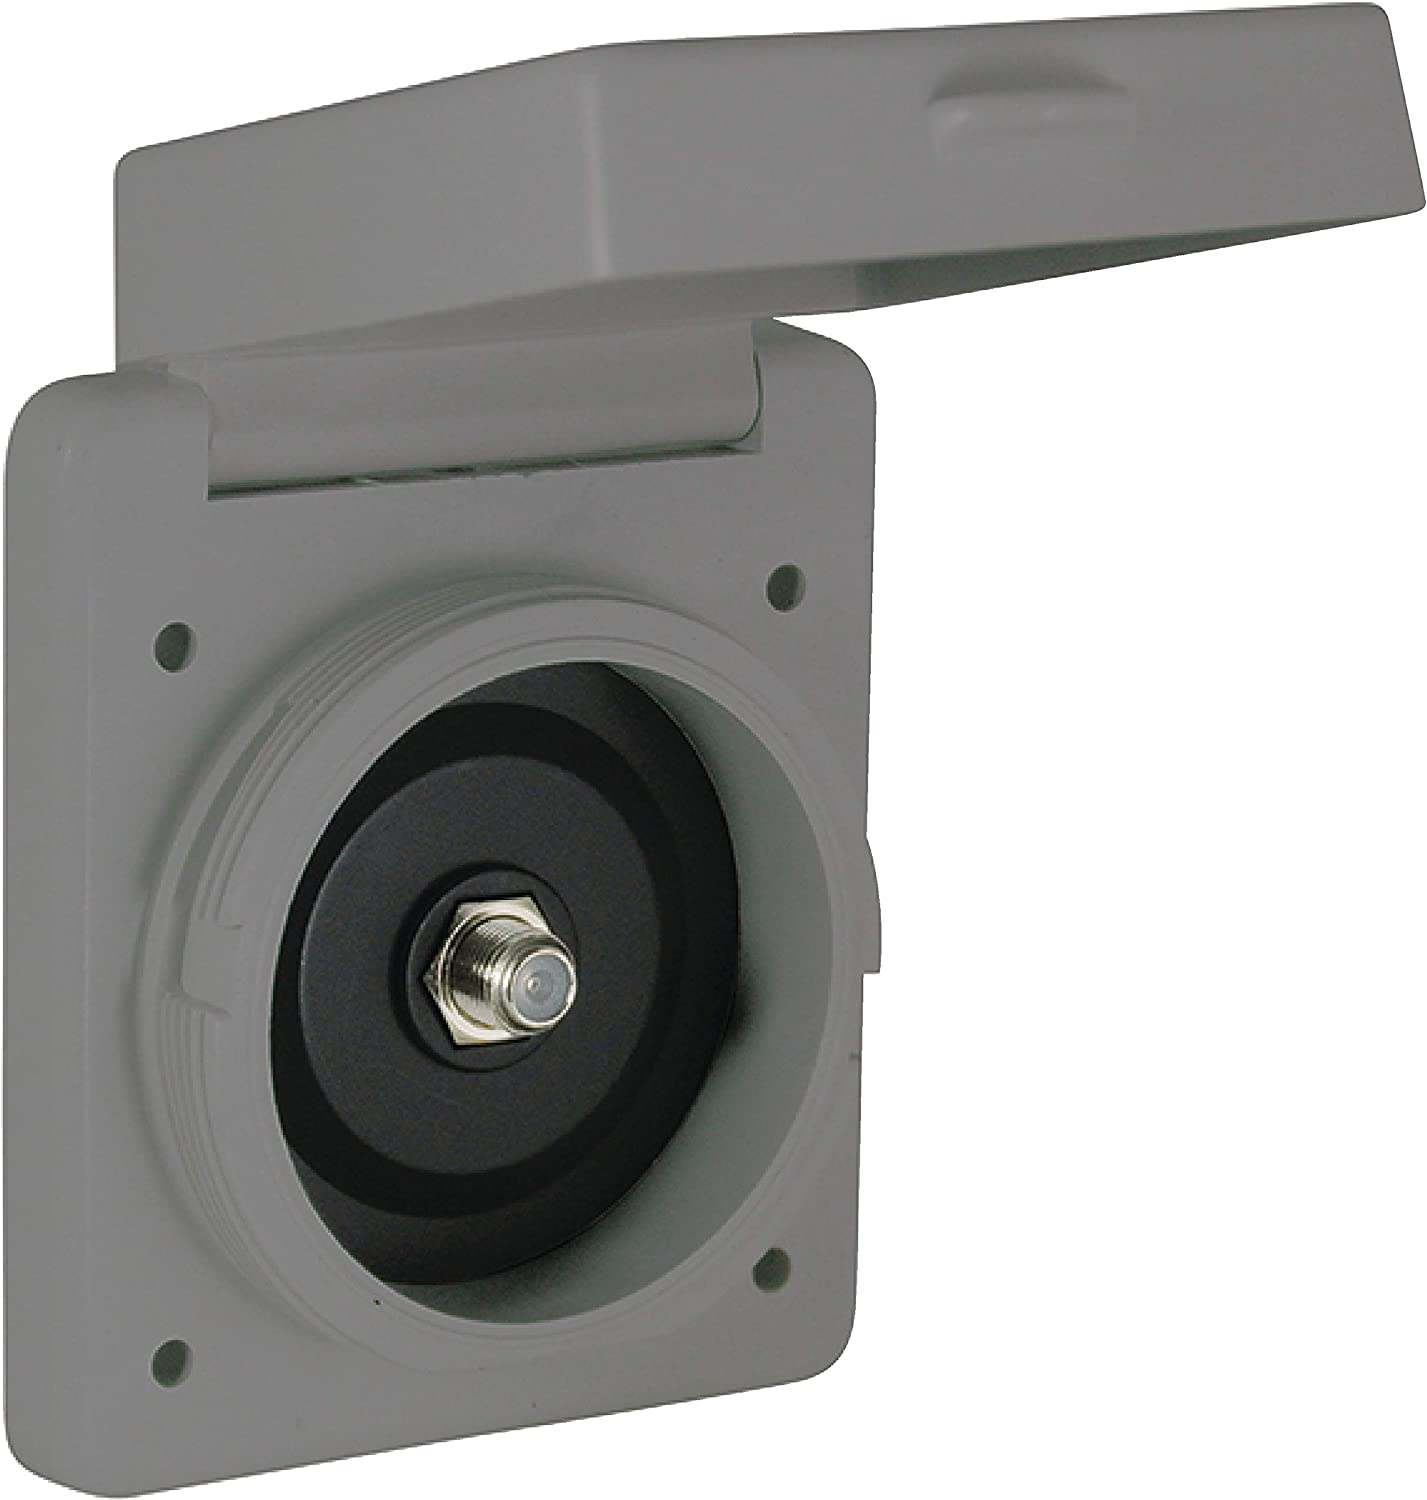 Gray ParkPower by Marinco Cable TV Standard Inlet